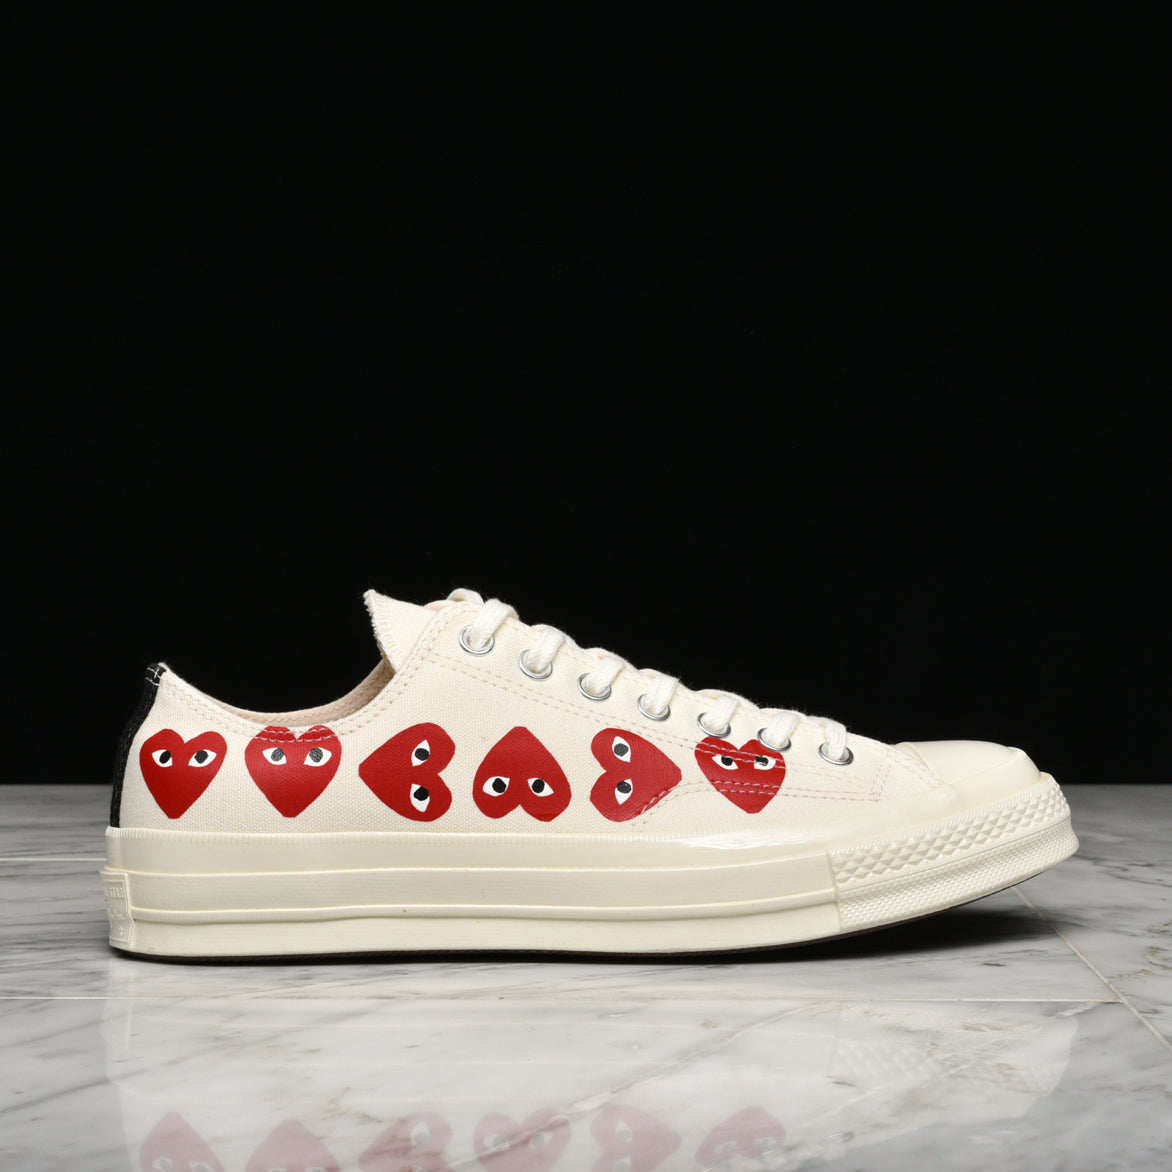 CDG PLAY X CONVERSE MULTI HEART CHUCK 70 PLAY OX WHITE